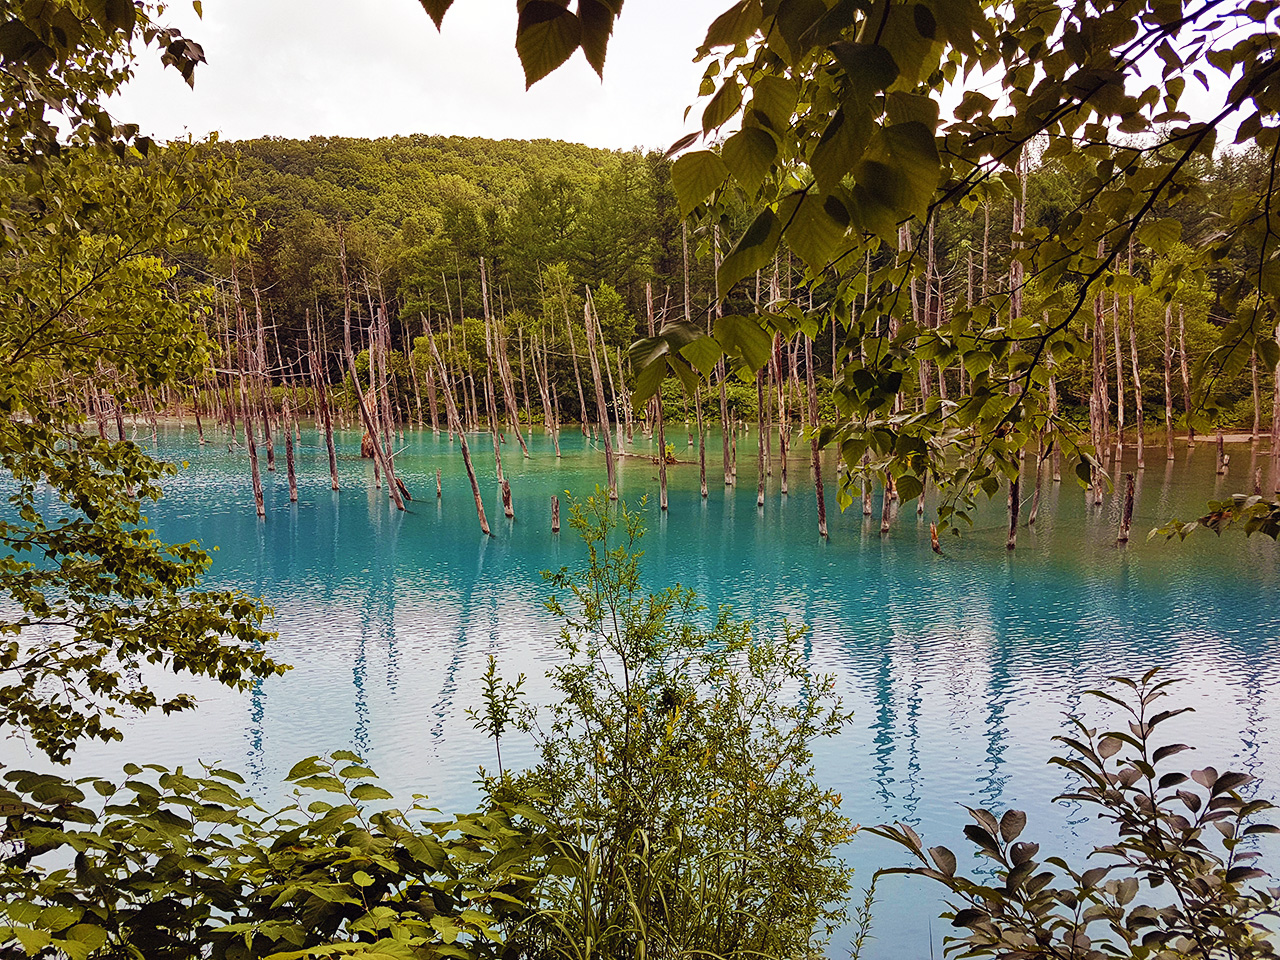 The shade of blue at the Biei Pond depends largely on the weather and season.